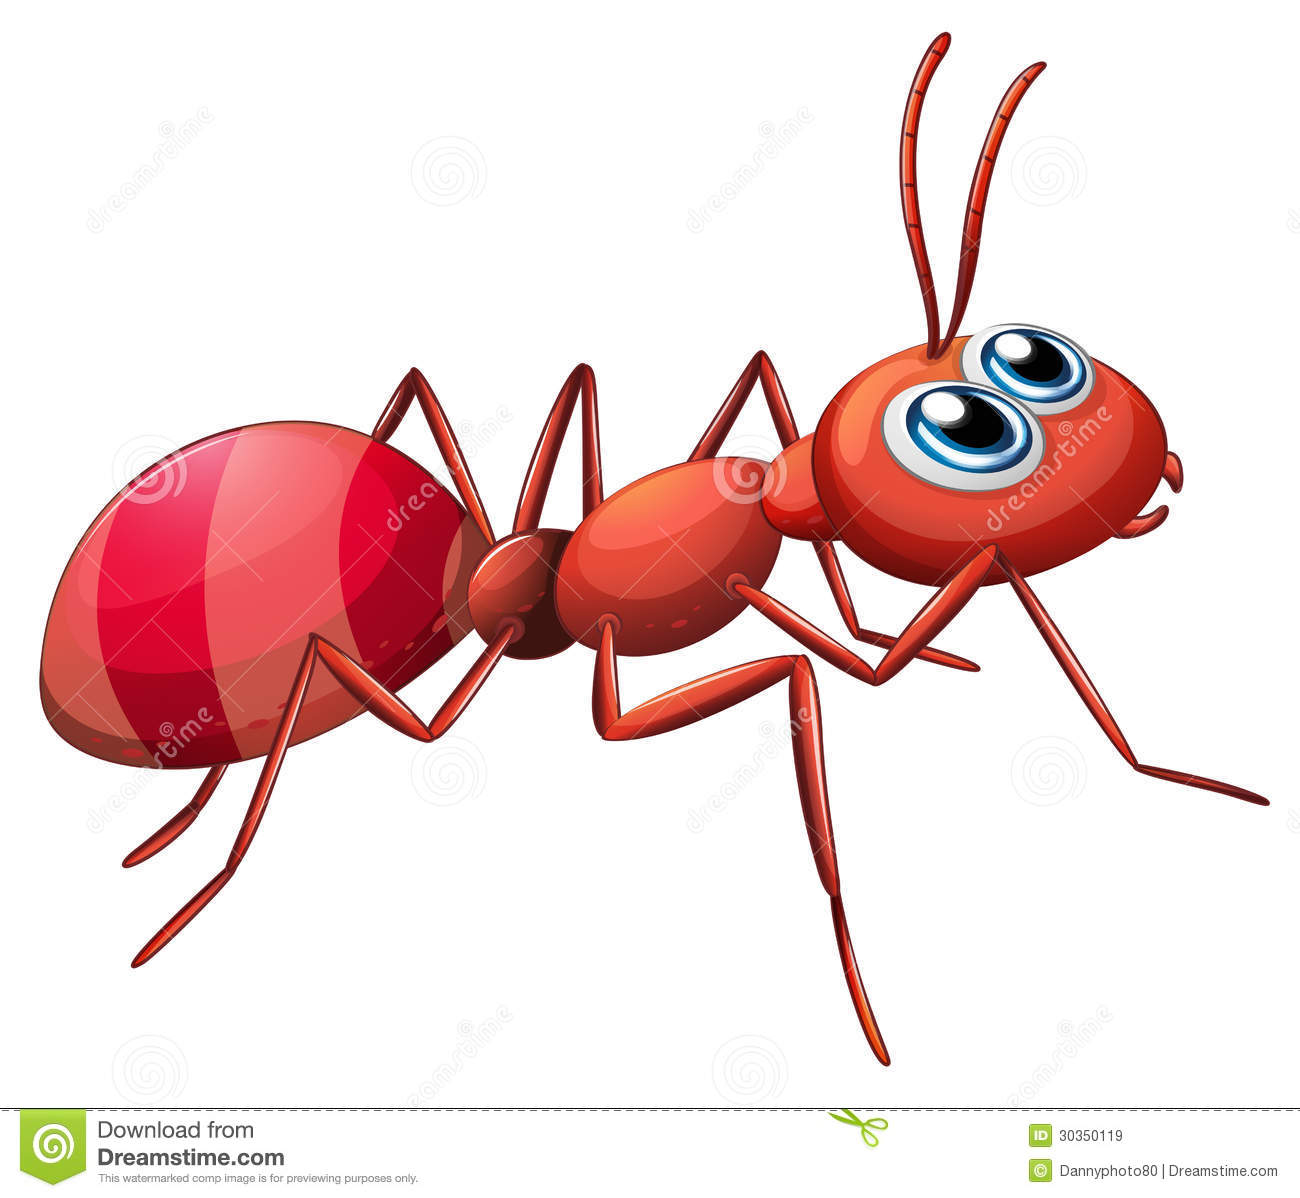 Uncategorized Ant Images For Kids a big ant crawling royalty free stock images image 30350119 photo